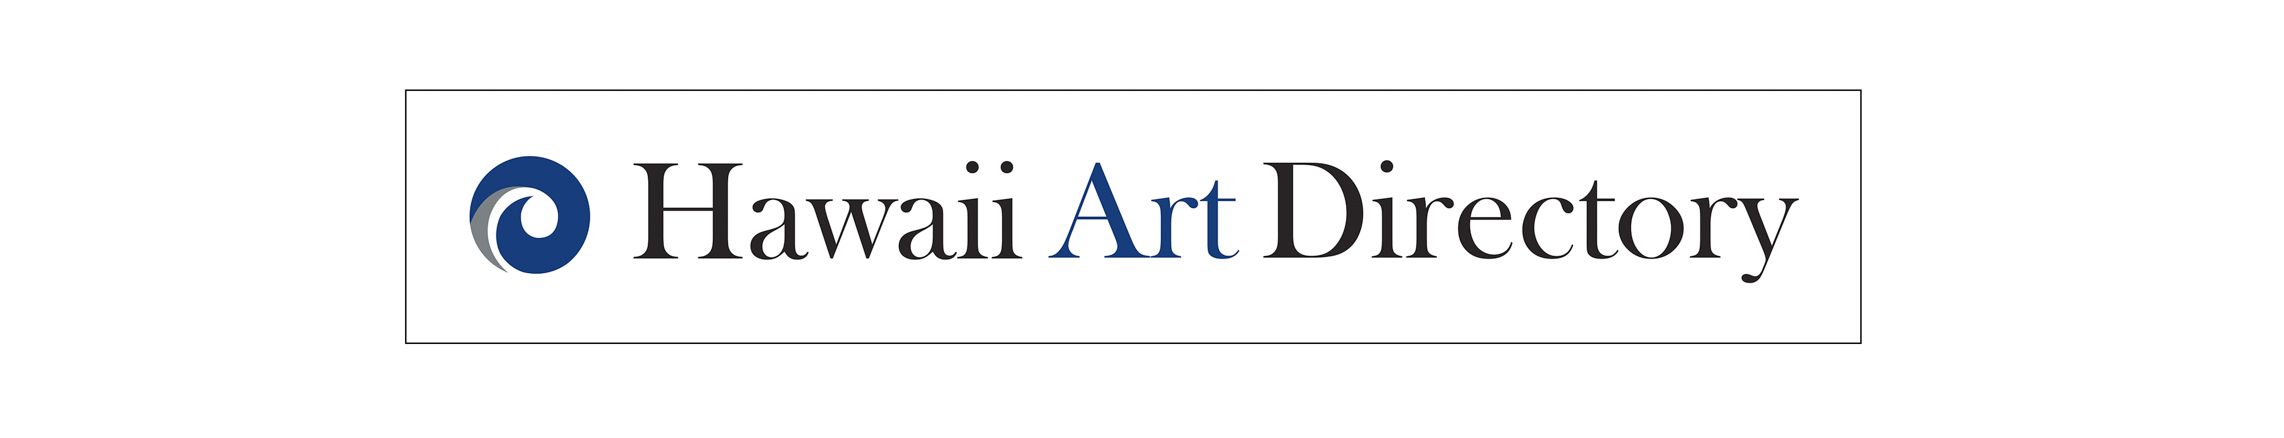 hawaiiartdirectory.jpg